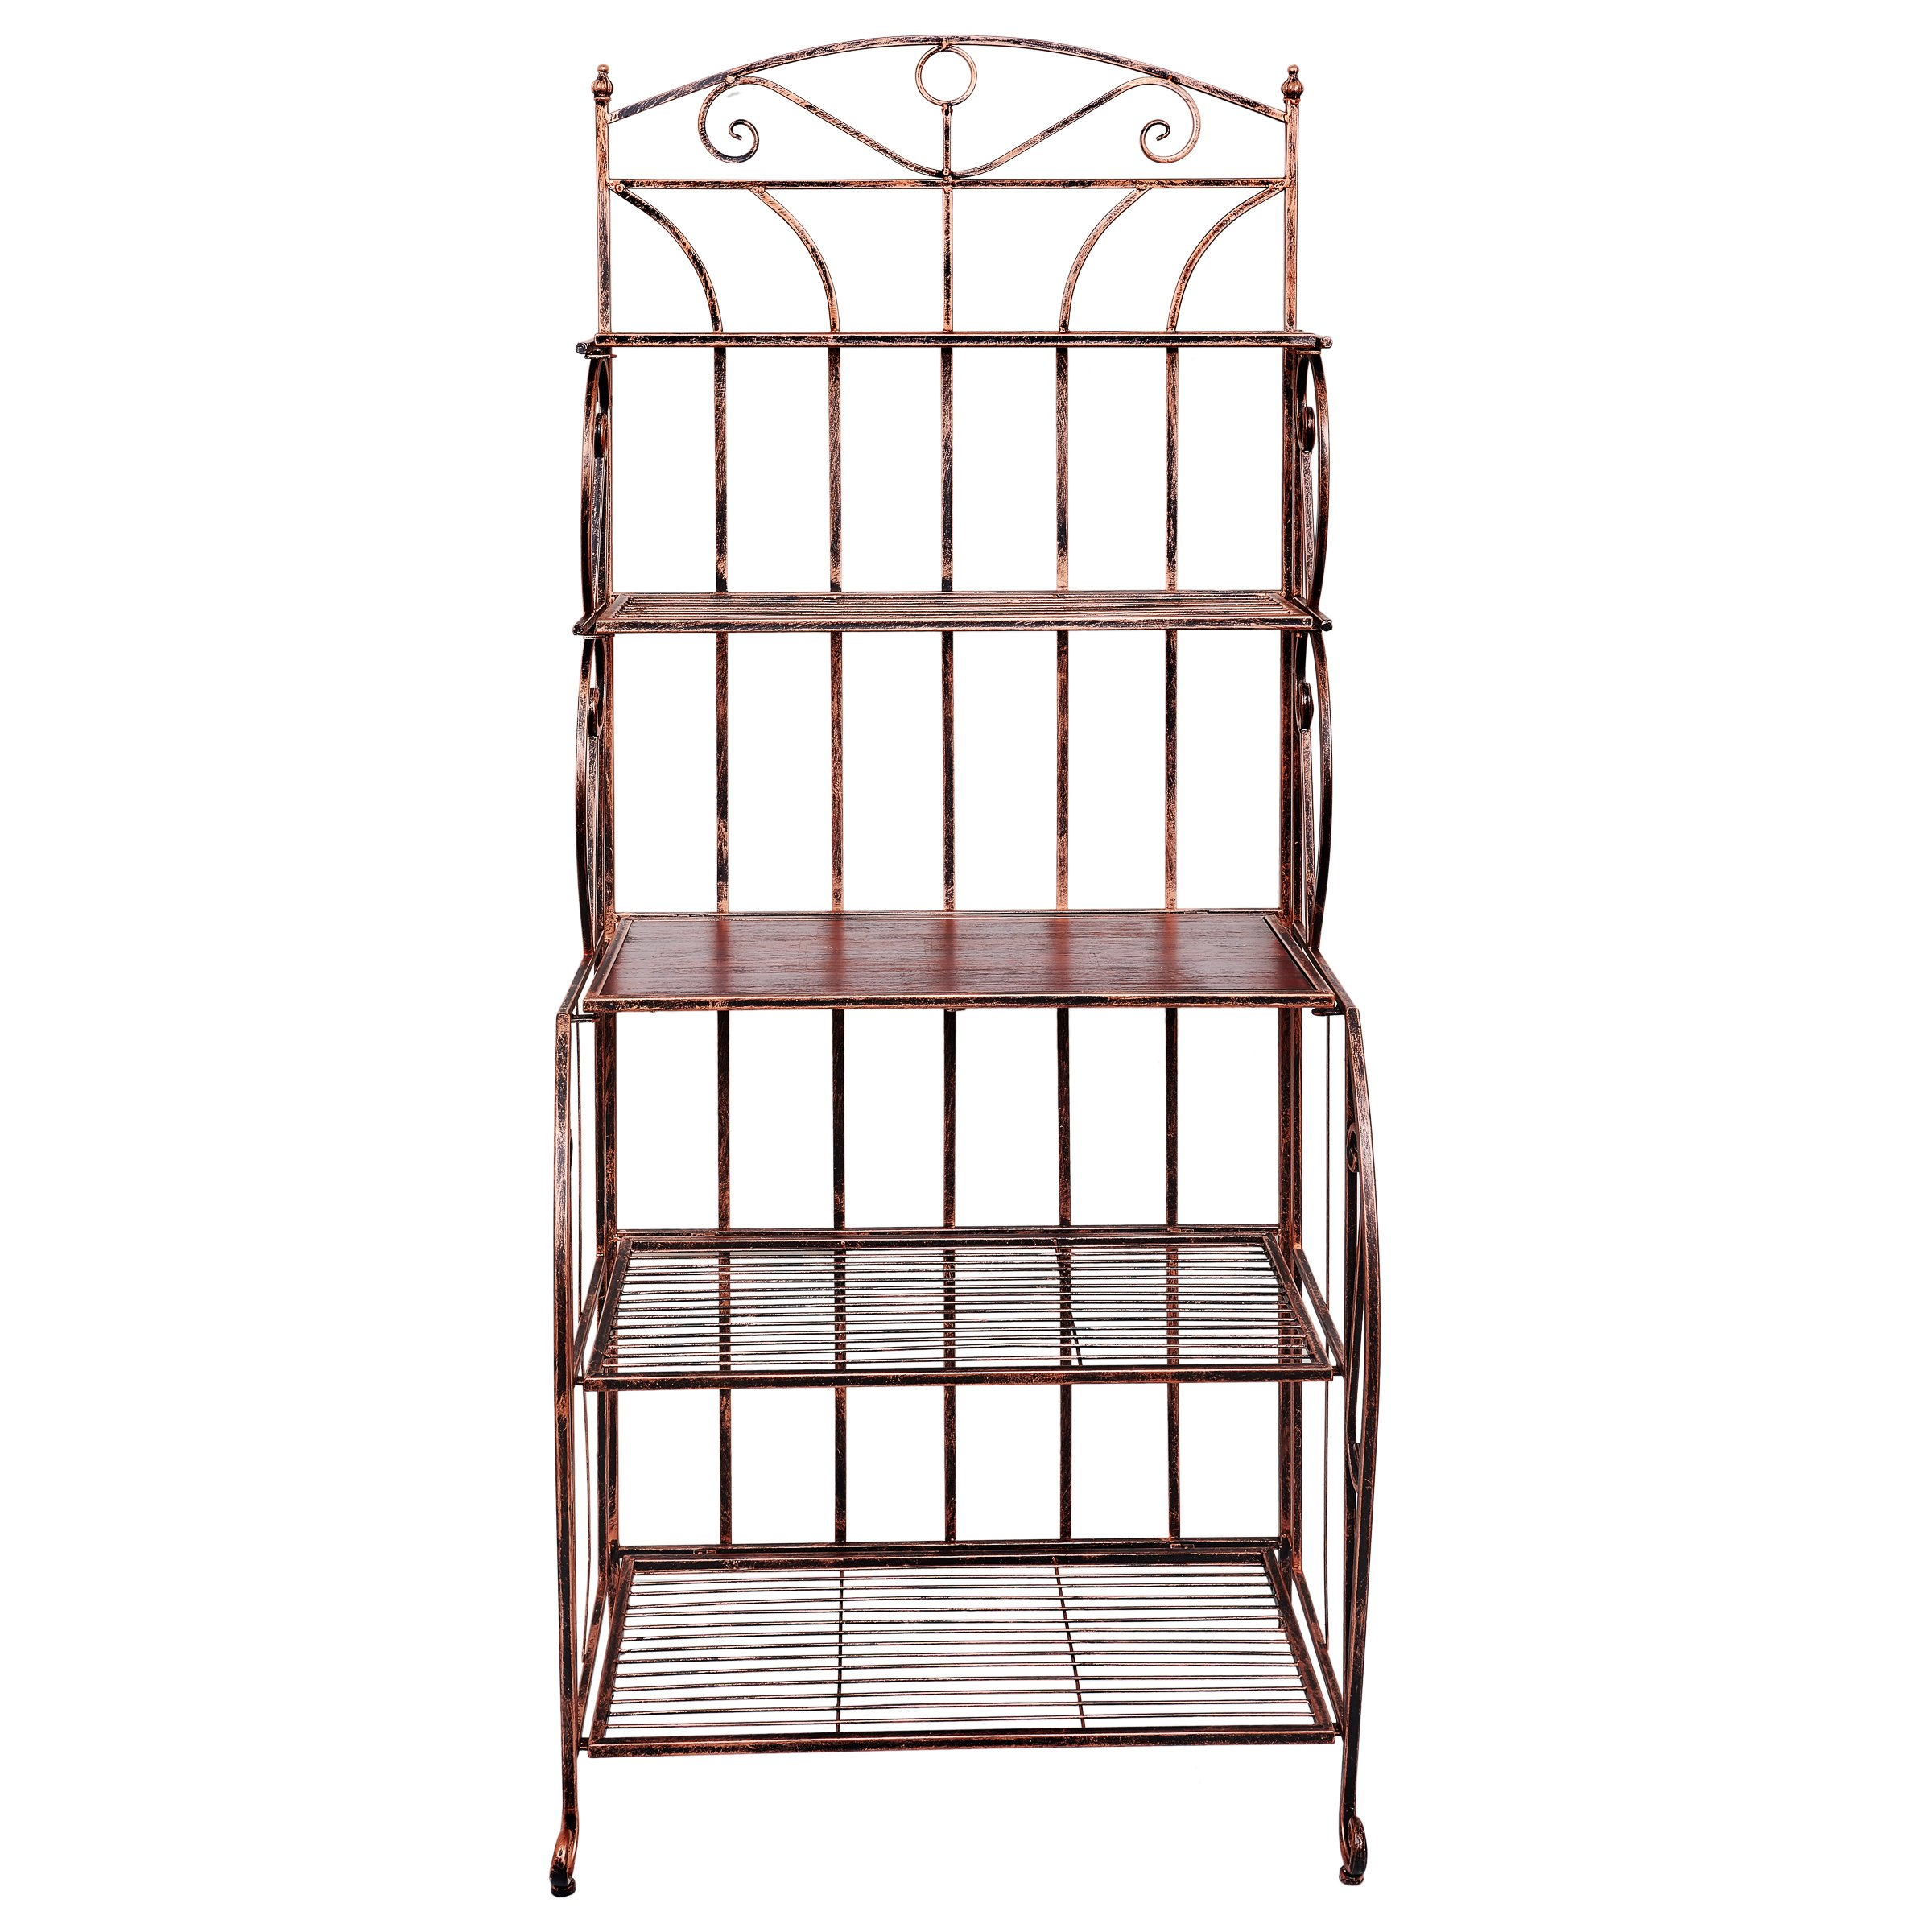 Old Dutch 610BC Saddlebrook Bakers Rack, 28'' x 19.5'' x 65.25'', Antique Copper and Rosewood